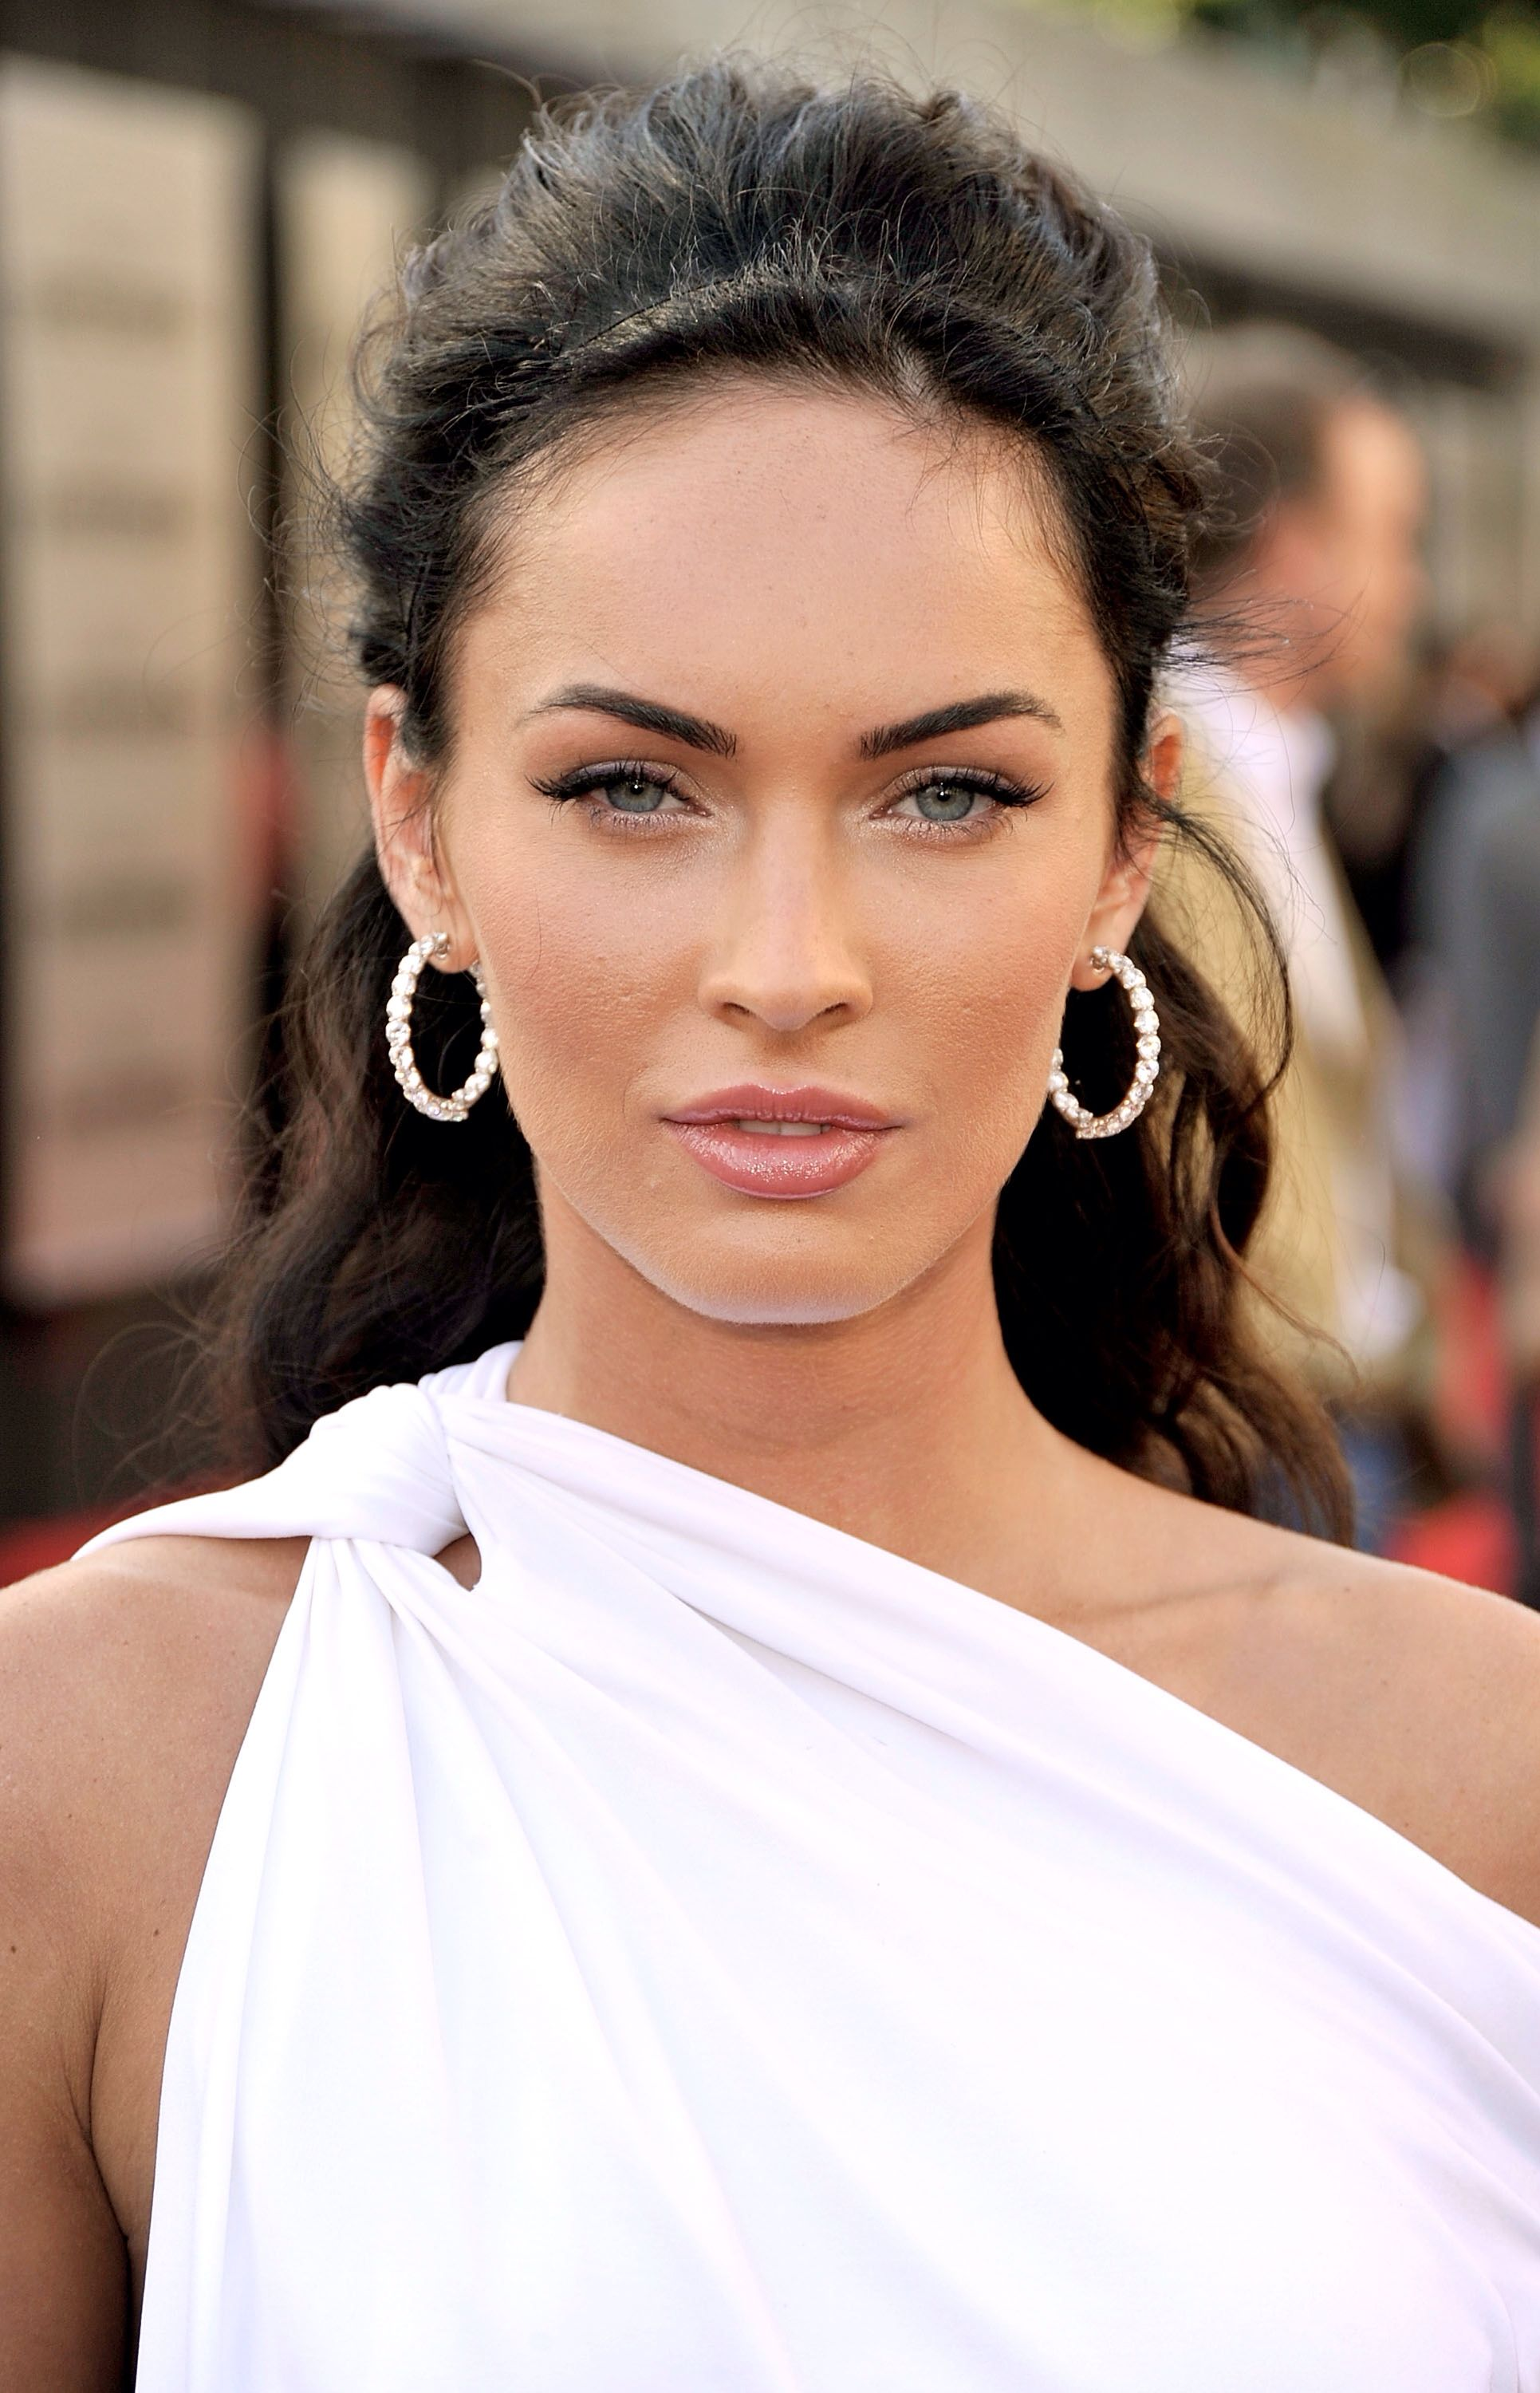 Megan Fox Earrings Transformers Revenge Of The Fallen Hollywood